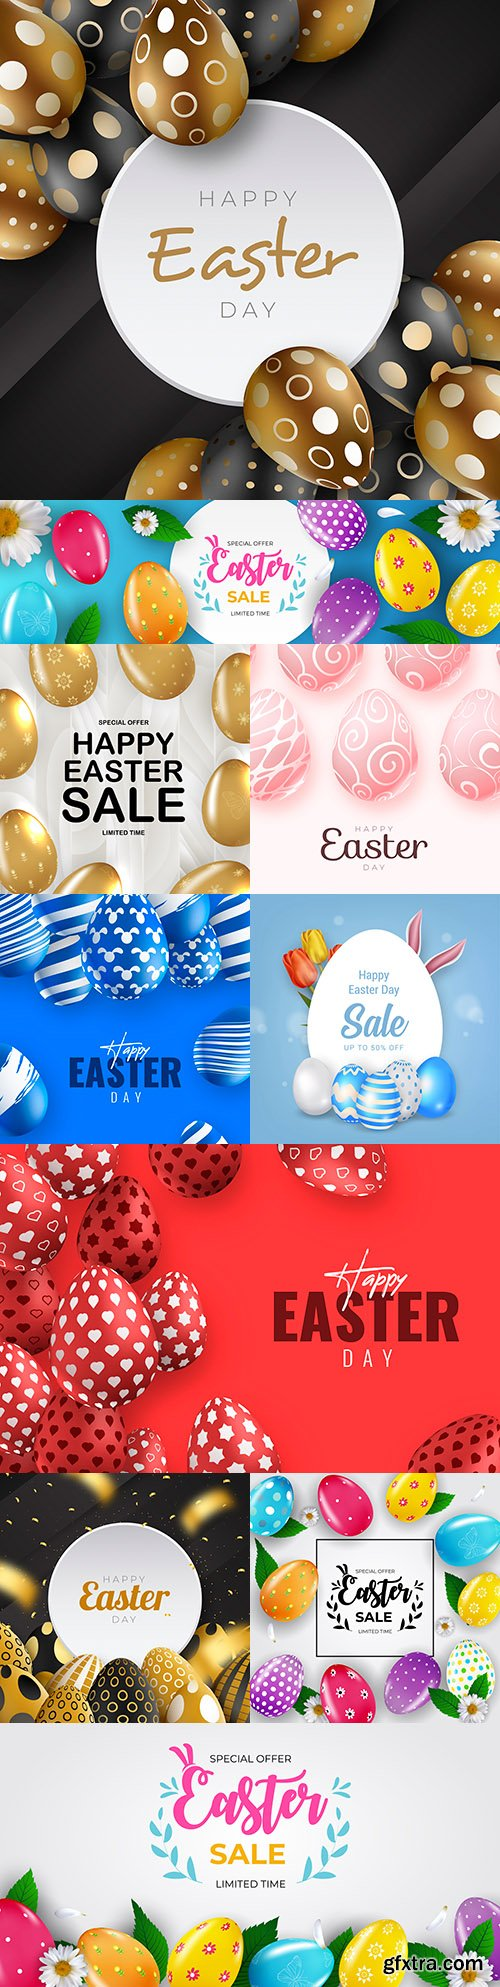 Happy Easter illustrations and elements for design 5